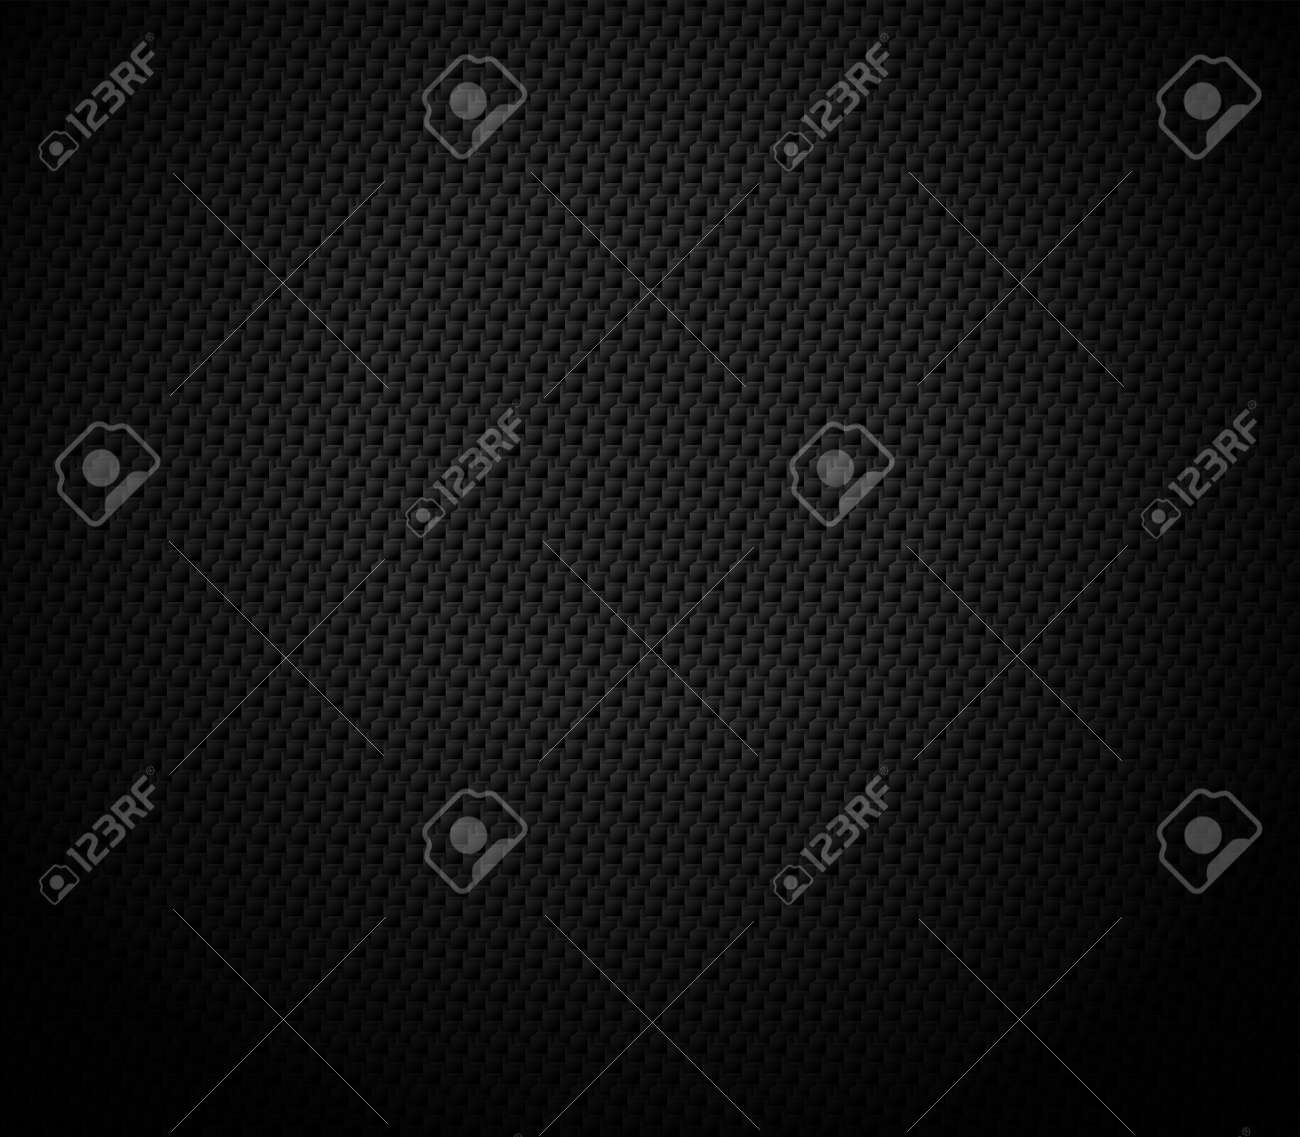 Vector Abstract black hexagonal background, 3D illustration in a4 size design - 158683305